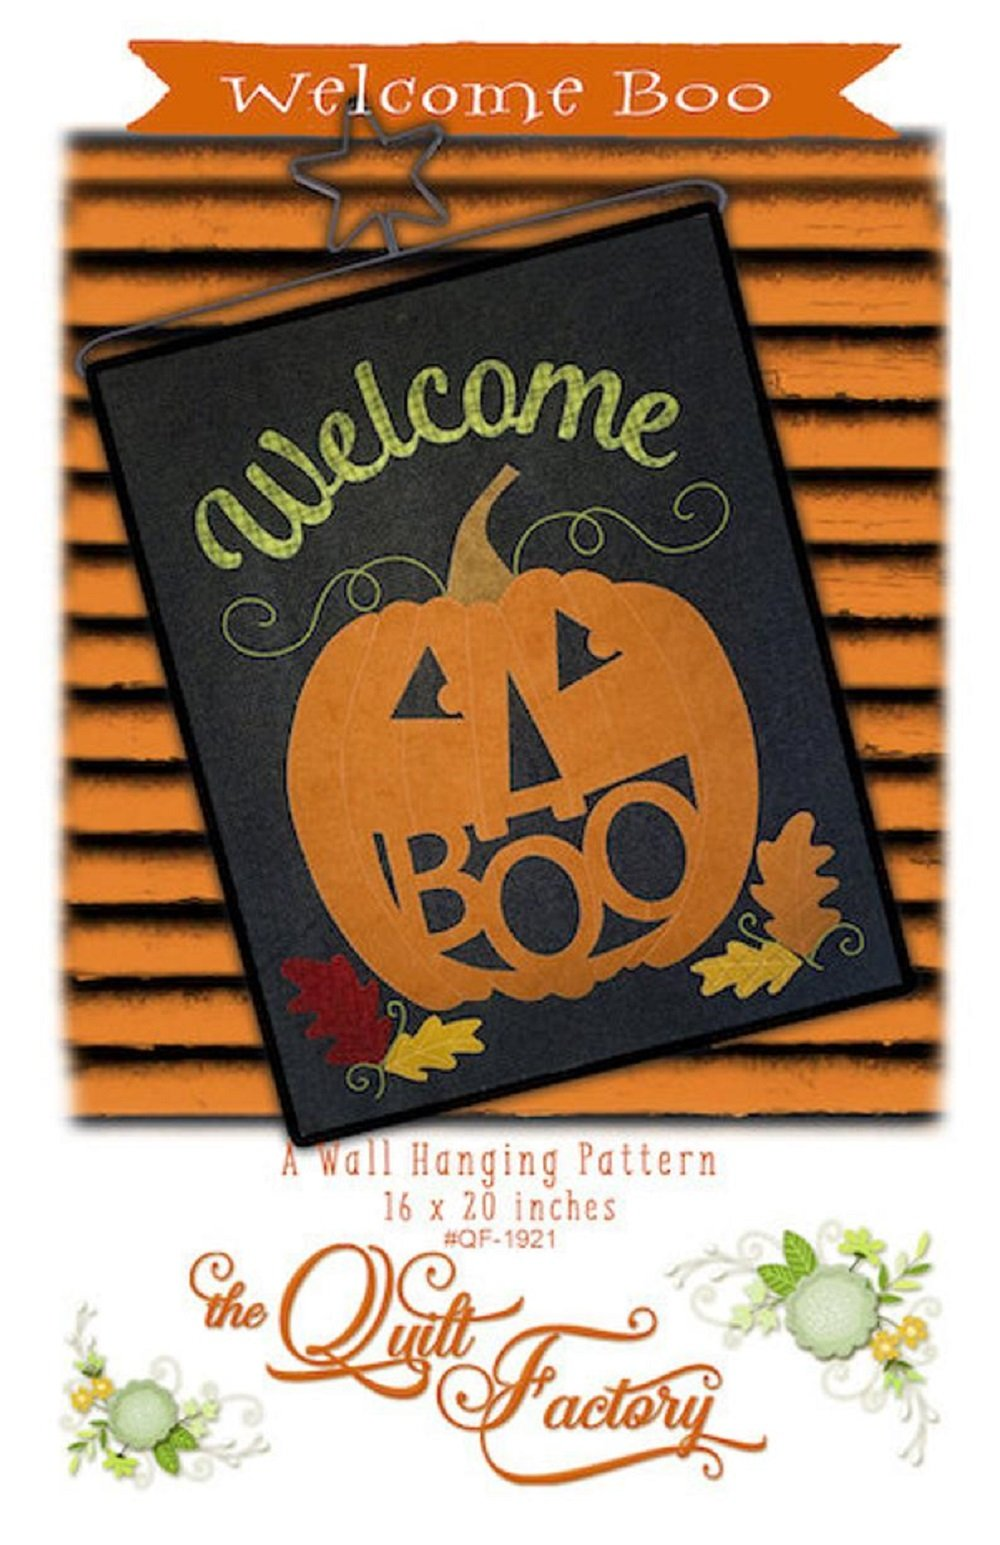 Welcome Boo Wall Hanging Pattern by The Quilt Factory